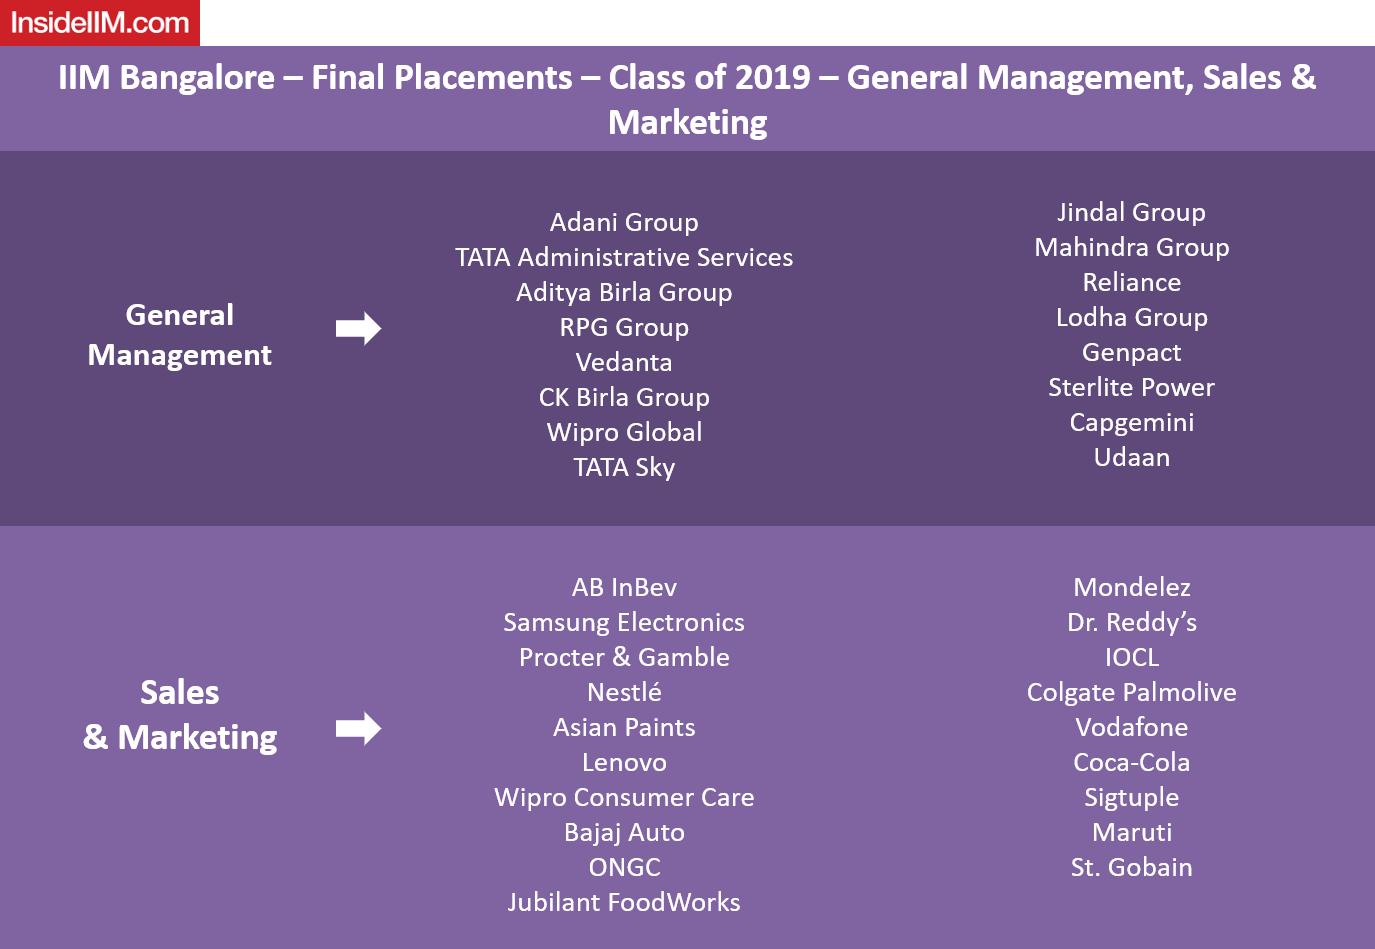 IIM Bangalore Final Placements 2019 - Sales & Marketing and General Management